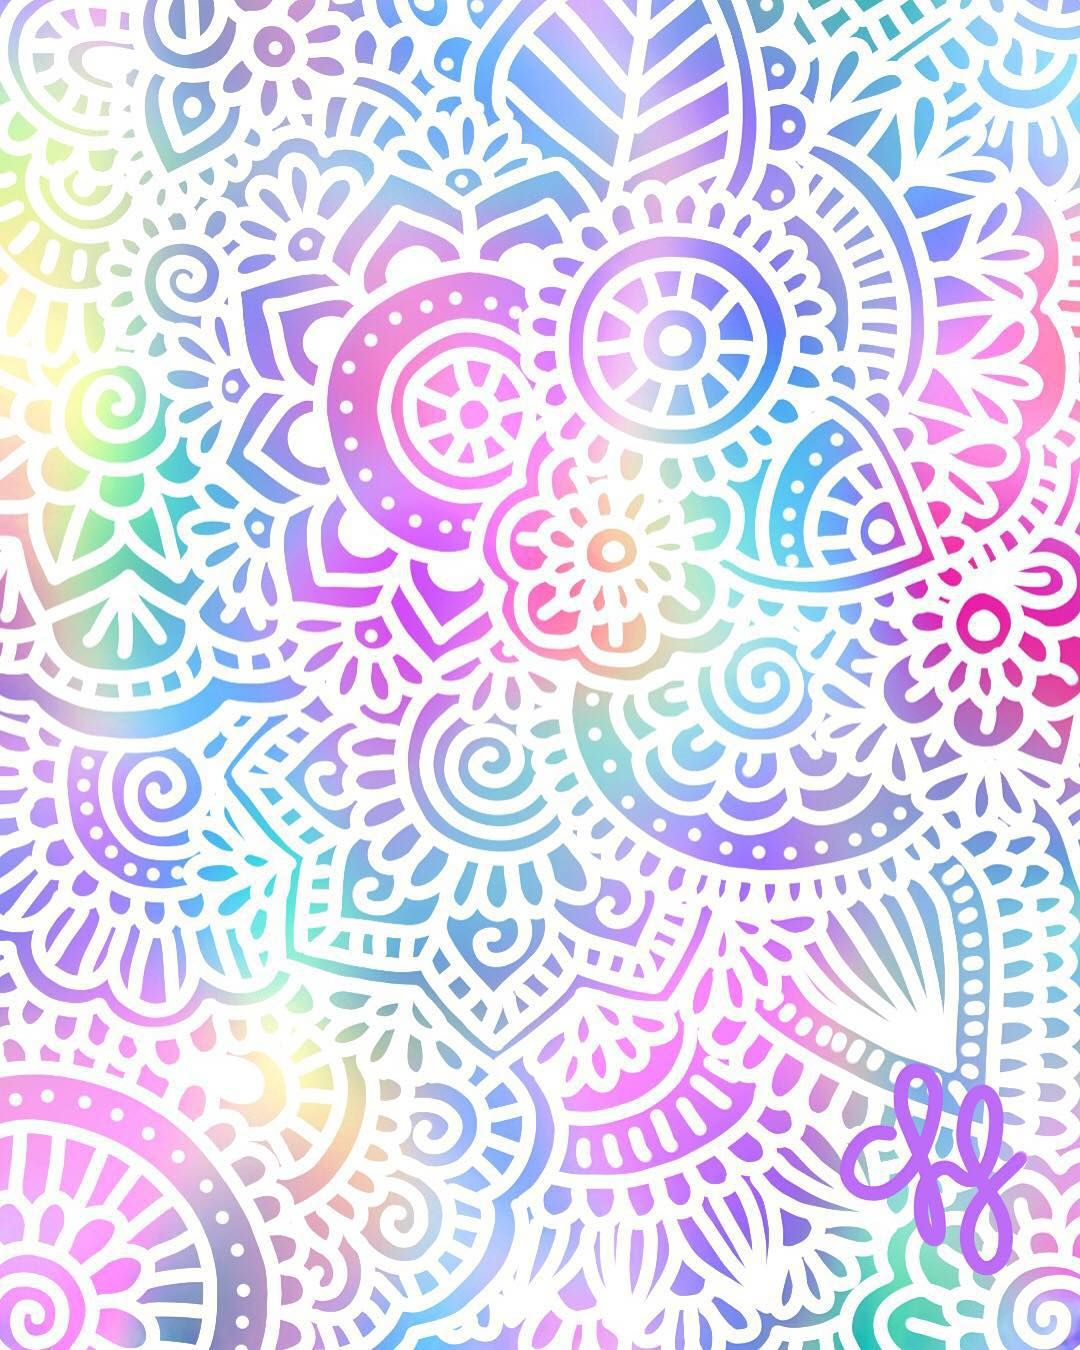 Colorful Iphone Wallpaper: Zentangle Art Con Colores Pastel